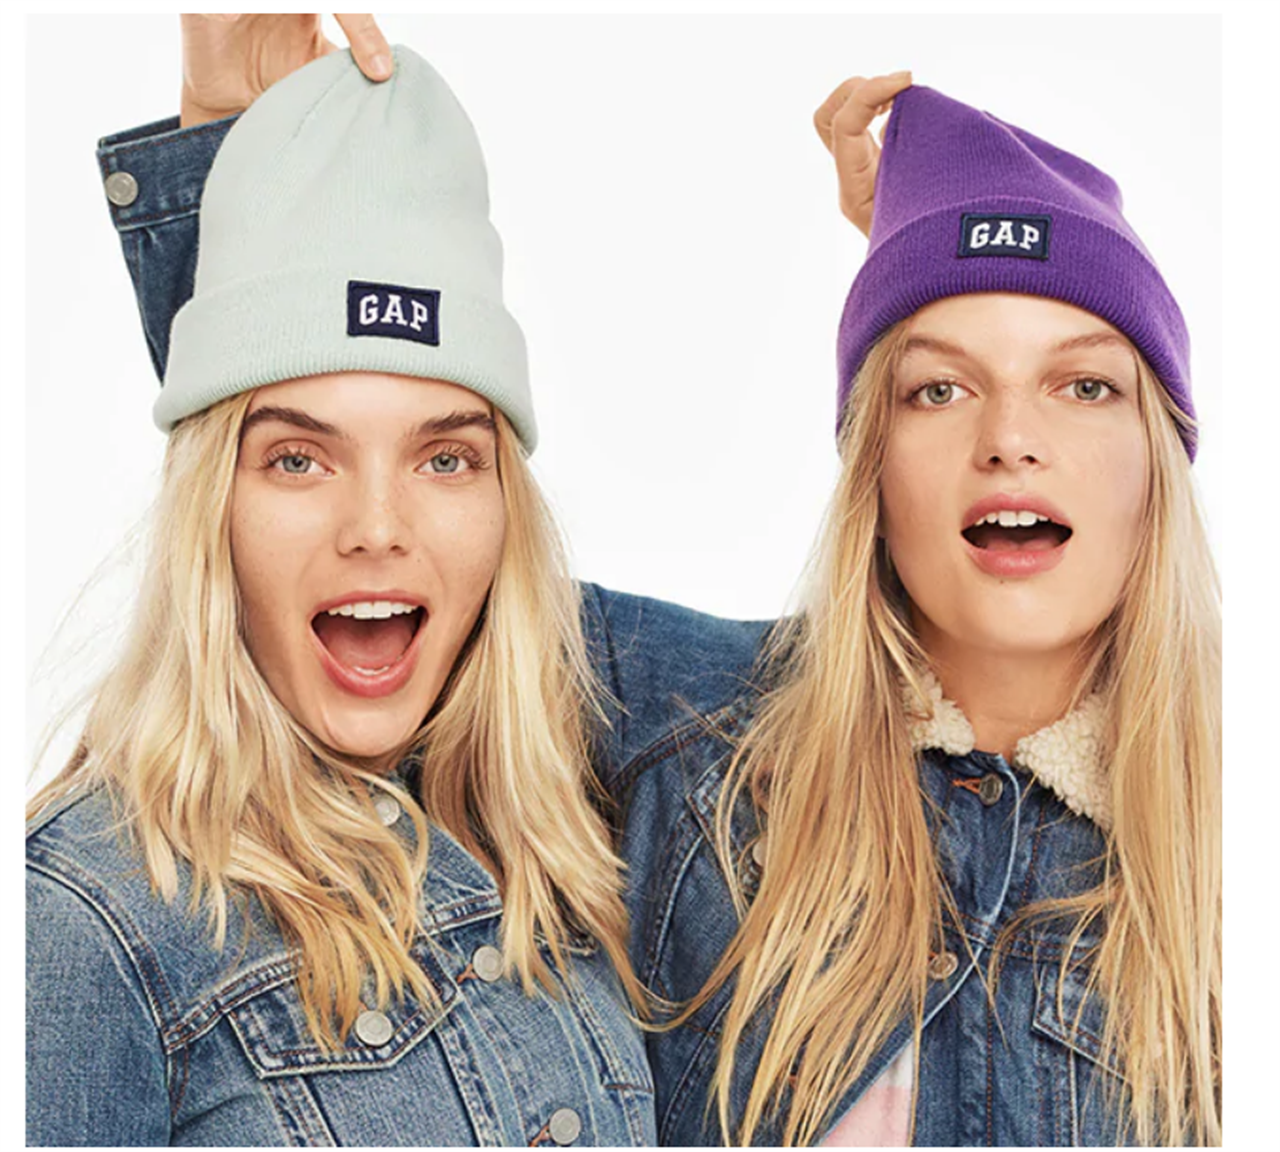 Gap Factory – Take An Additional 50% Off Clearance Items (Save Up to 85%)